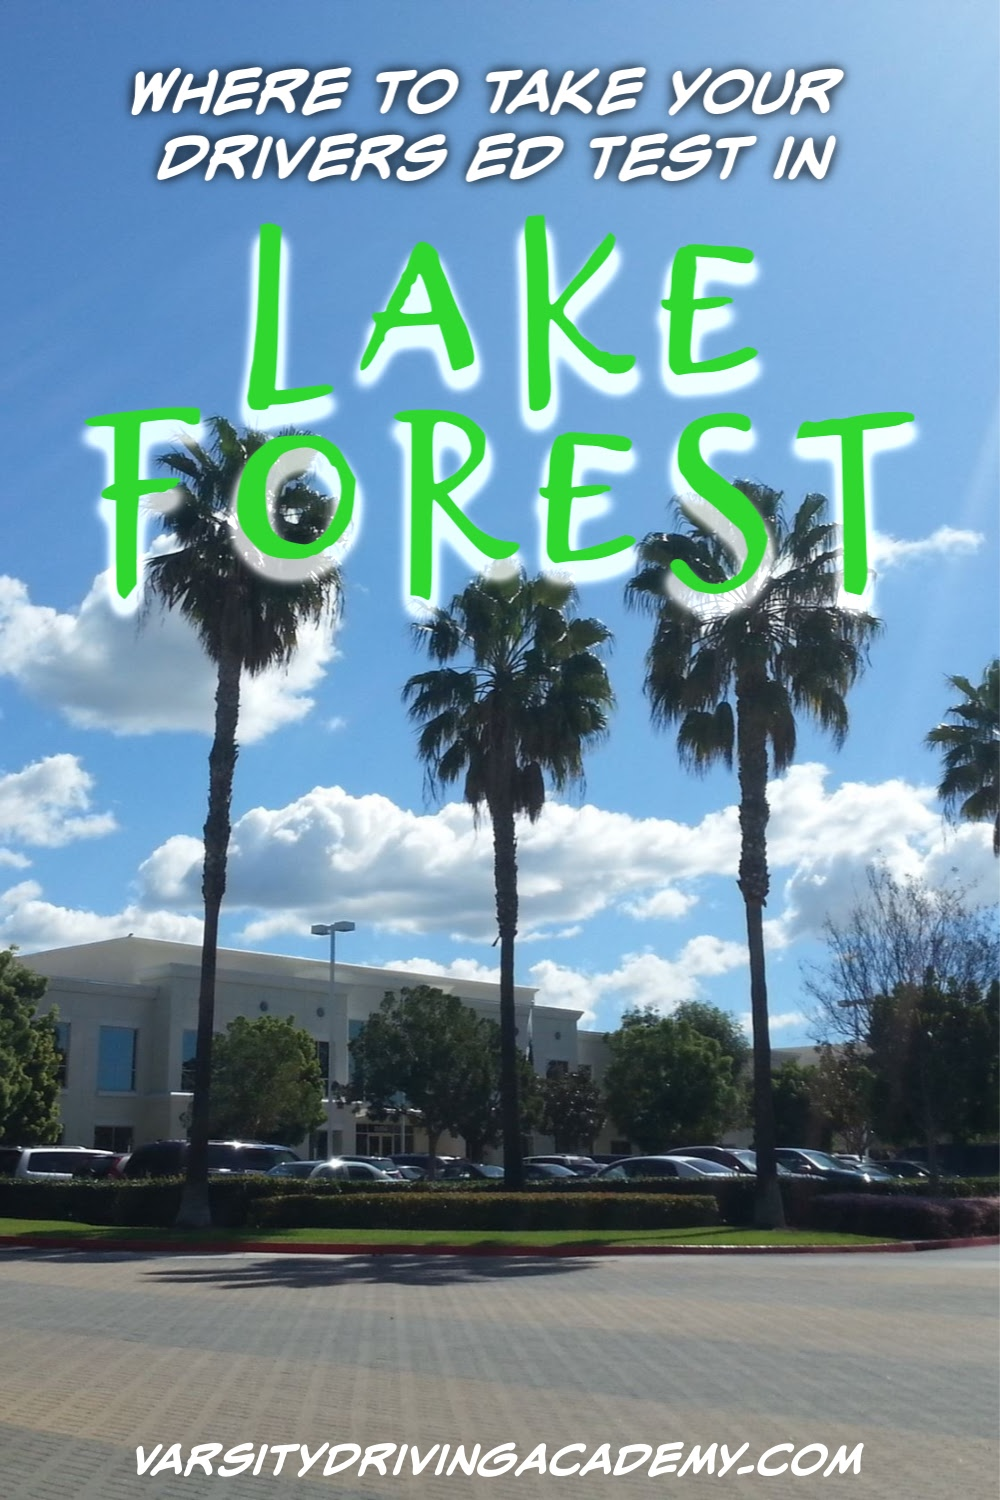 Knowing where to take your drivers ed test in Lake Forest could tell you where you need to practice driving in Orange County.